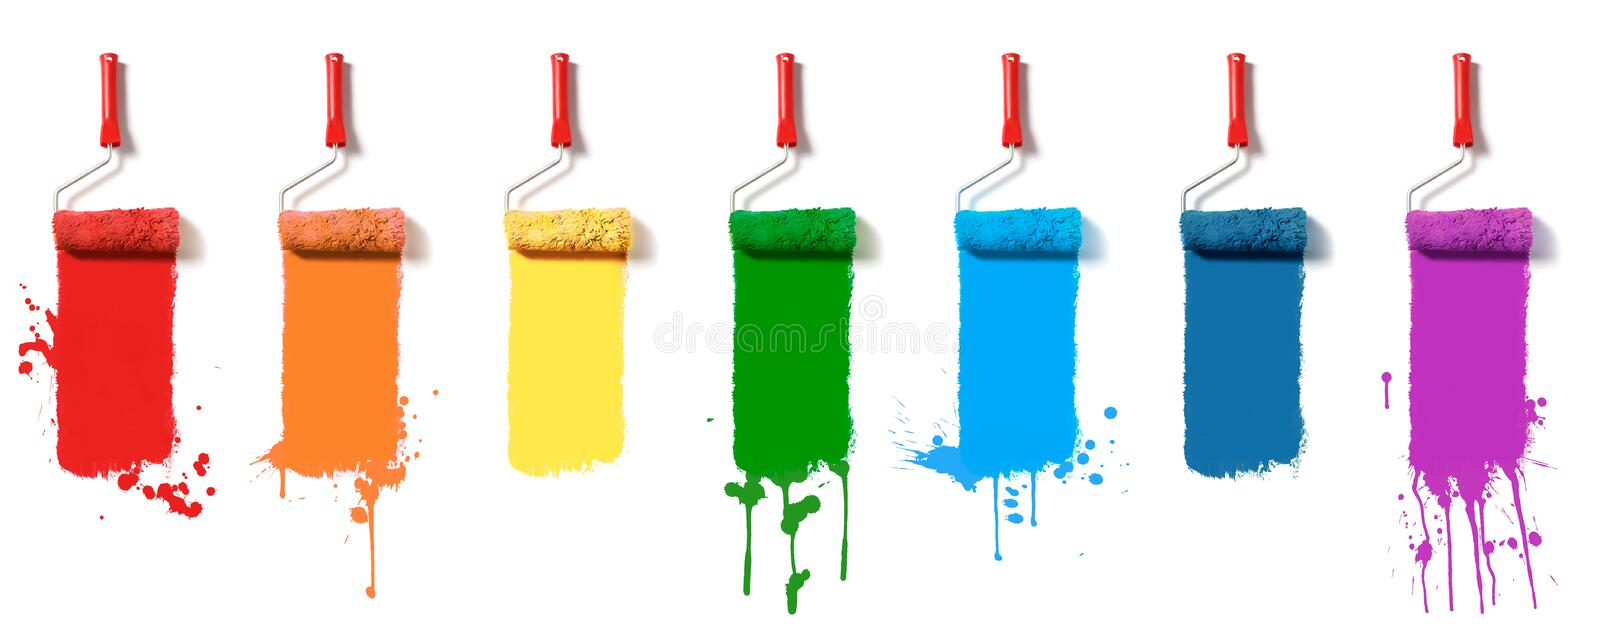 Set of paint rollers stock photo